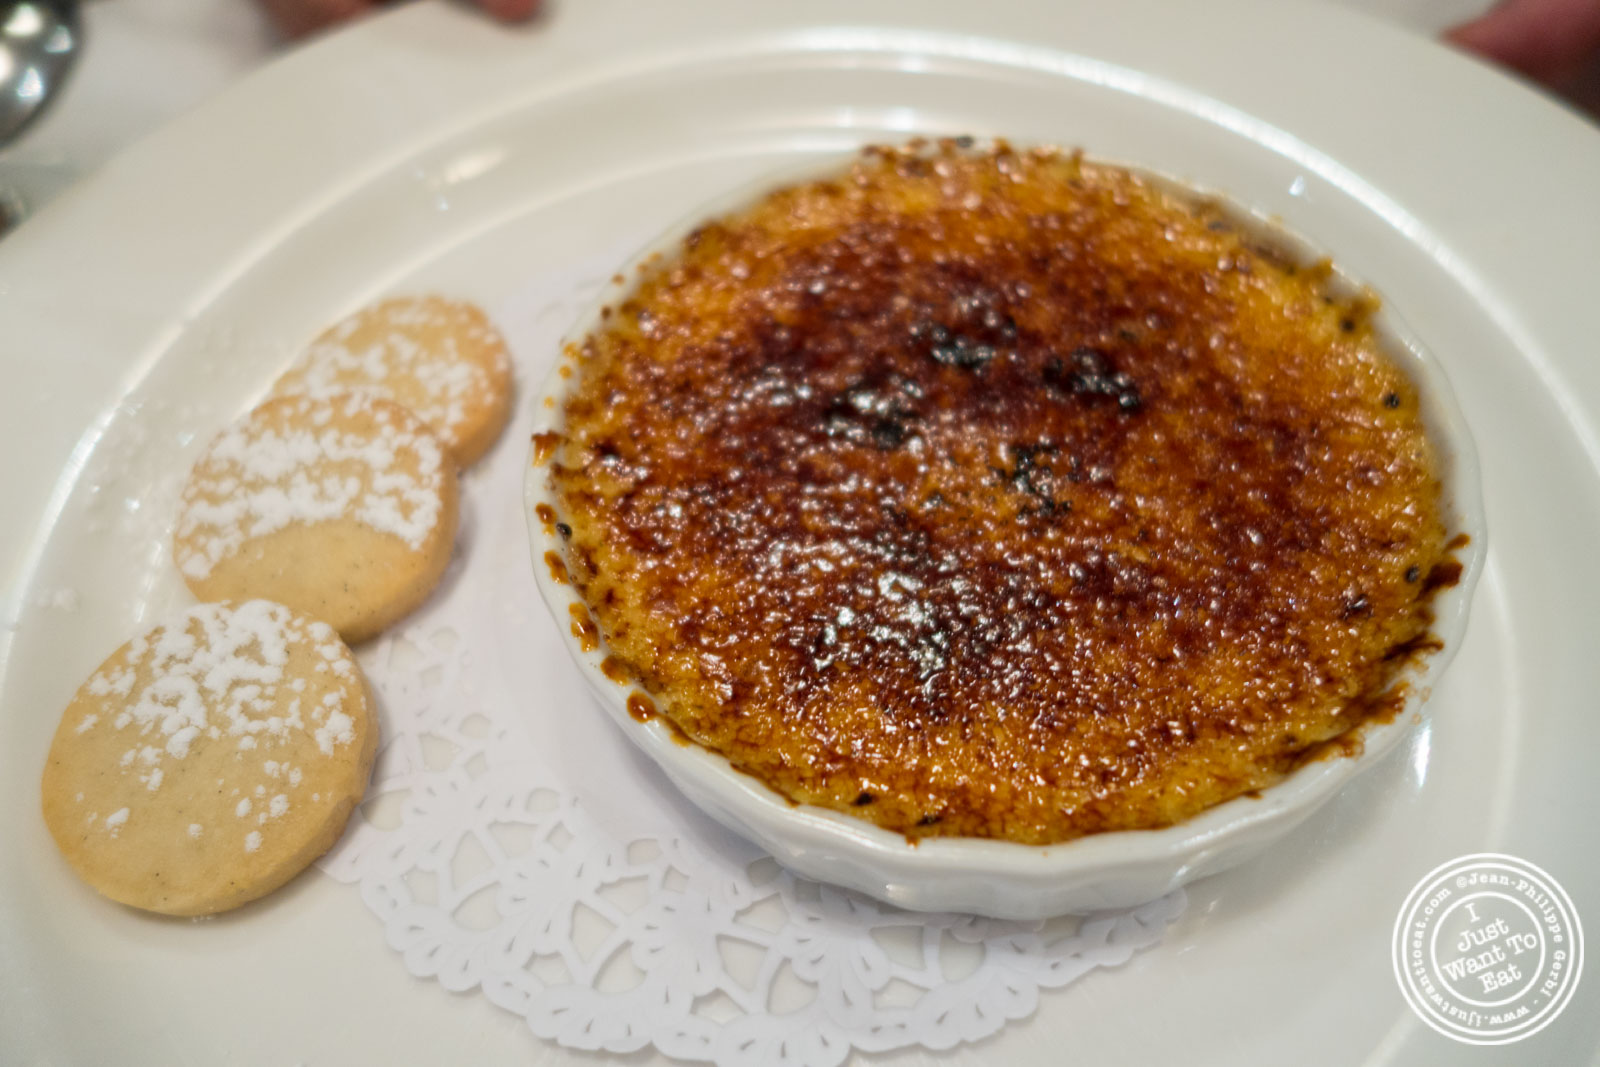 Creme brûlée at Rue 57 in NYC, New York